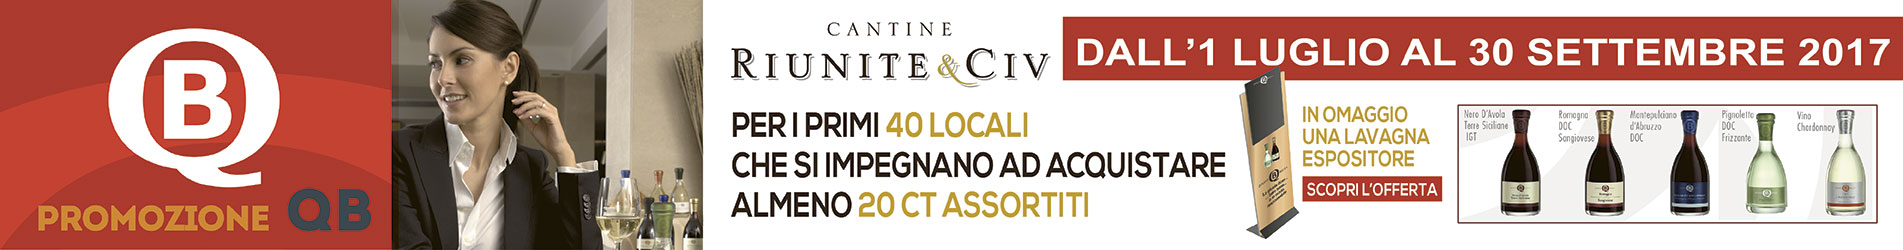 cantine_riunite-01